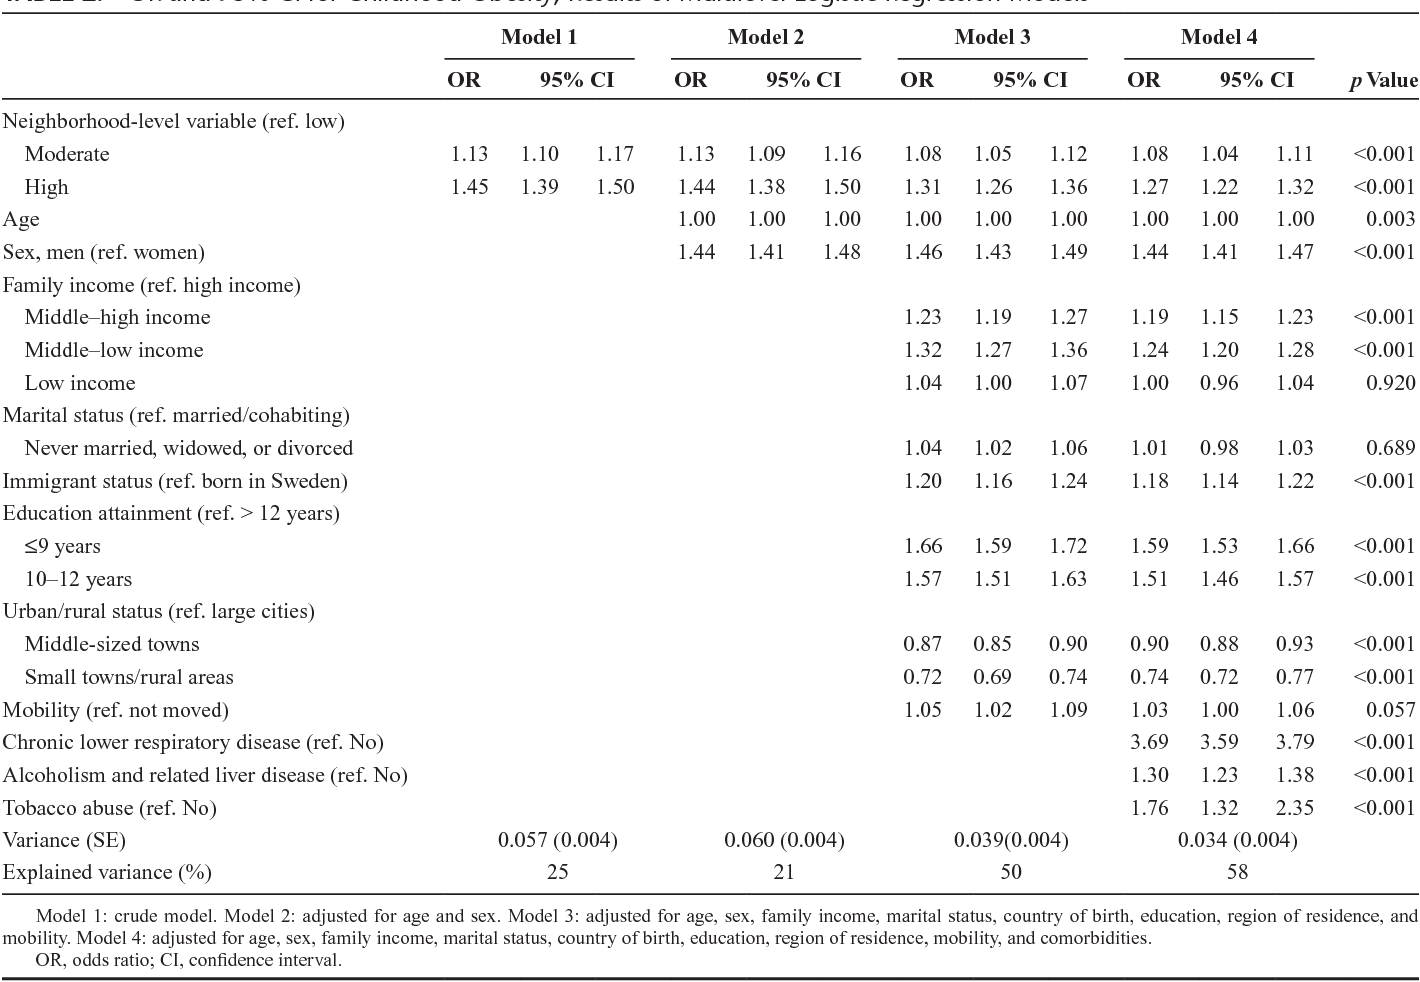 TABLE 2. OR and 95% CI for Childhood Obesity; Results of Multilevel Logistic Regression Models